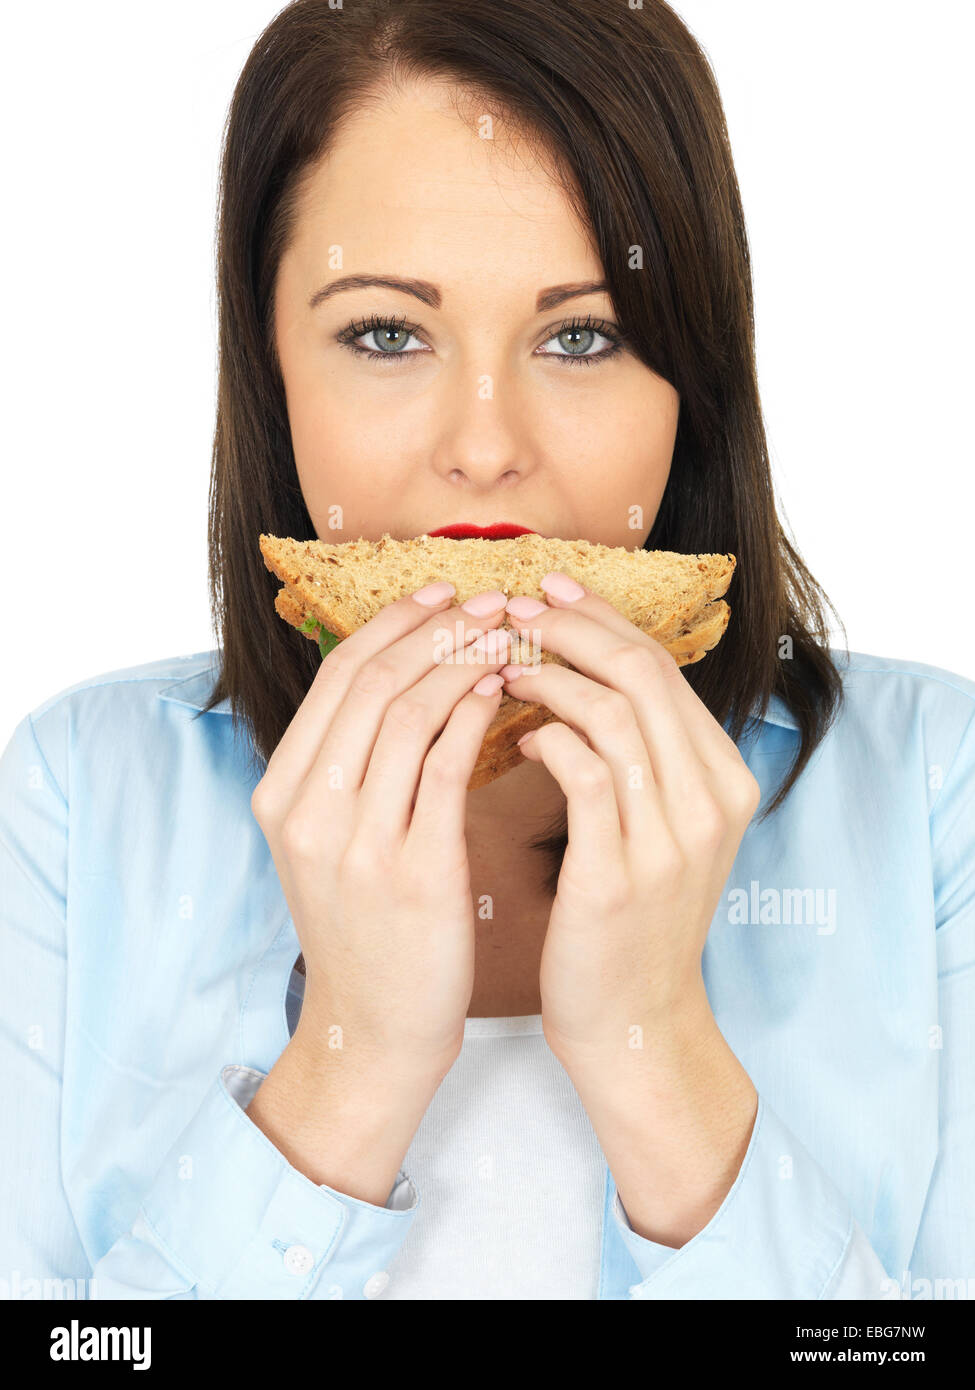 Attractive Twenty Something Young Woman Eating a Sandwich - Stock Image